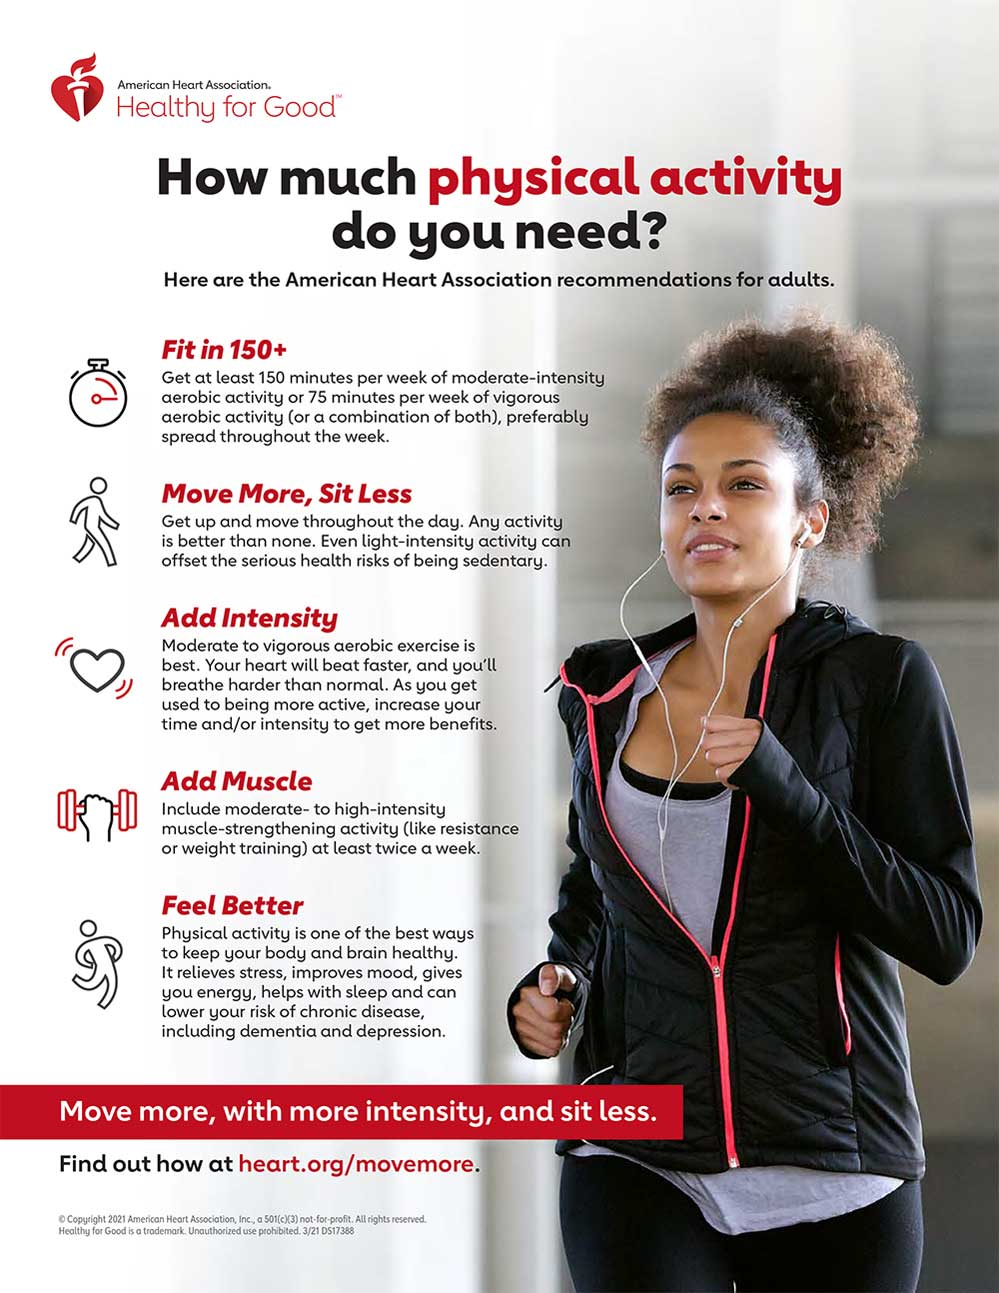 AHA Physical Activity Recommendations Infographic